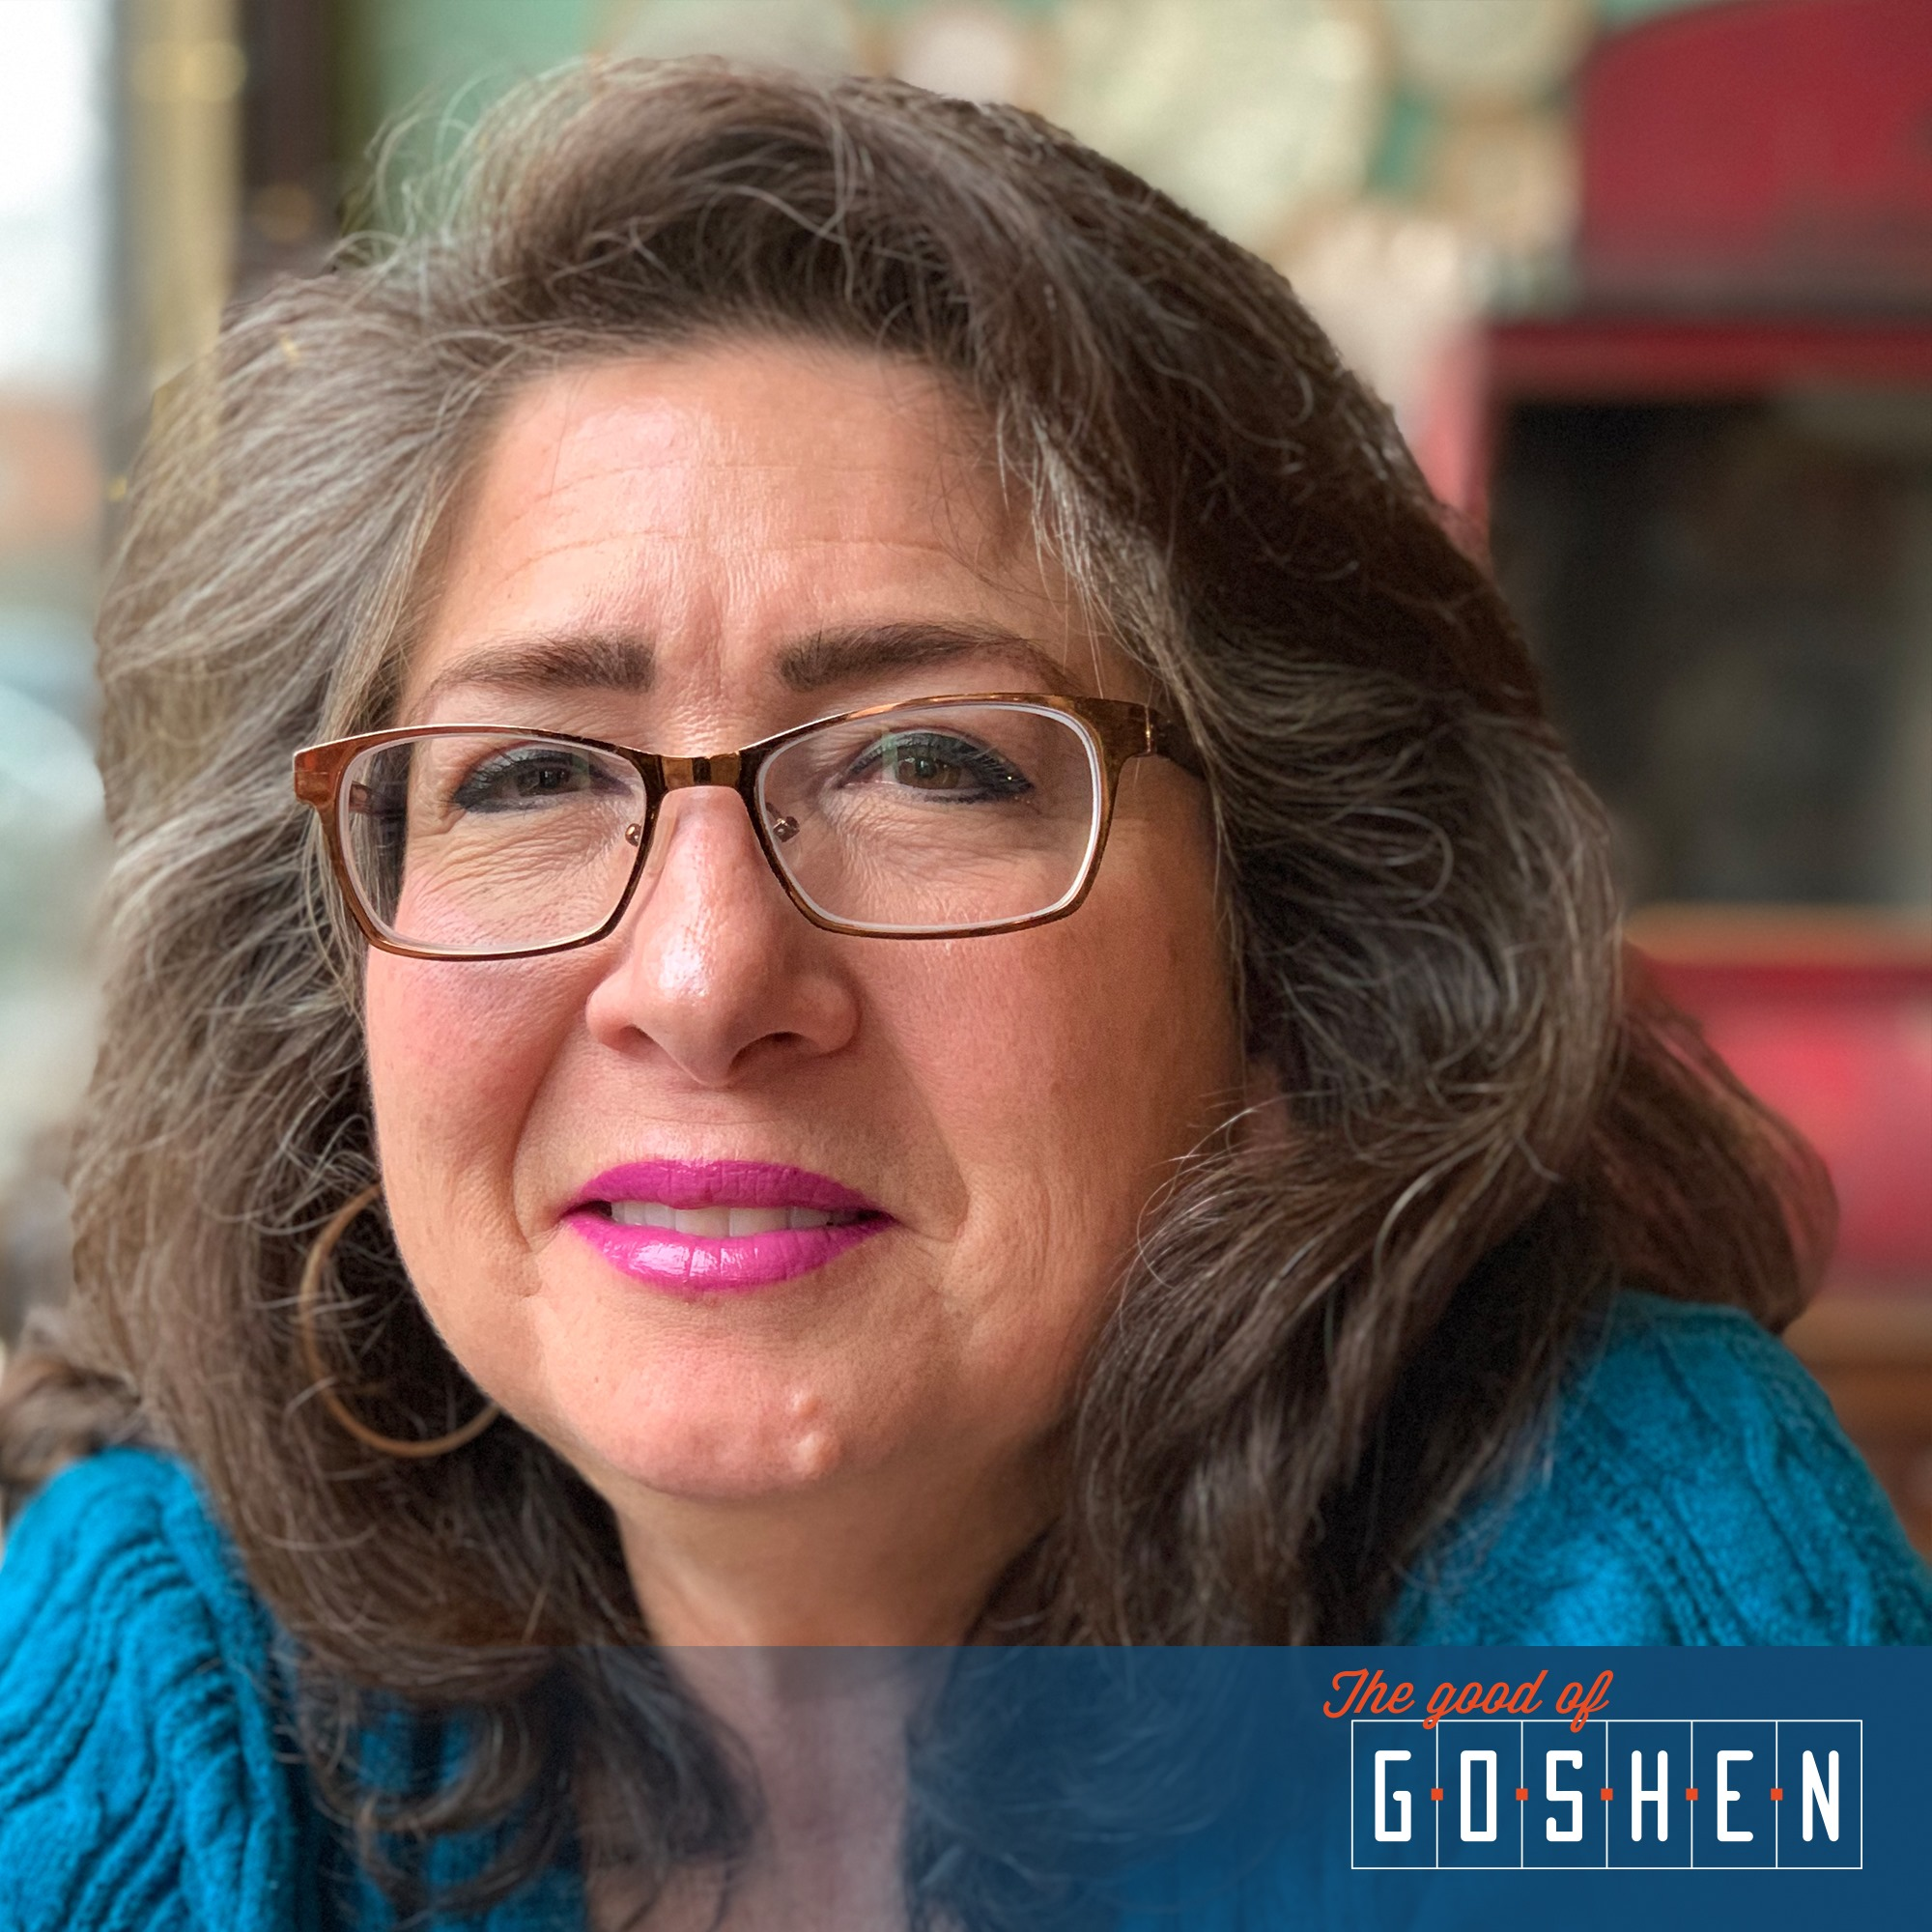 Lisa Guedea Carreño • The Good of Goshen